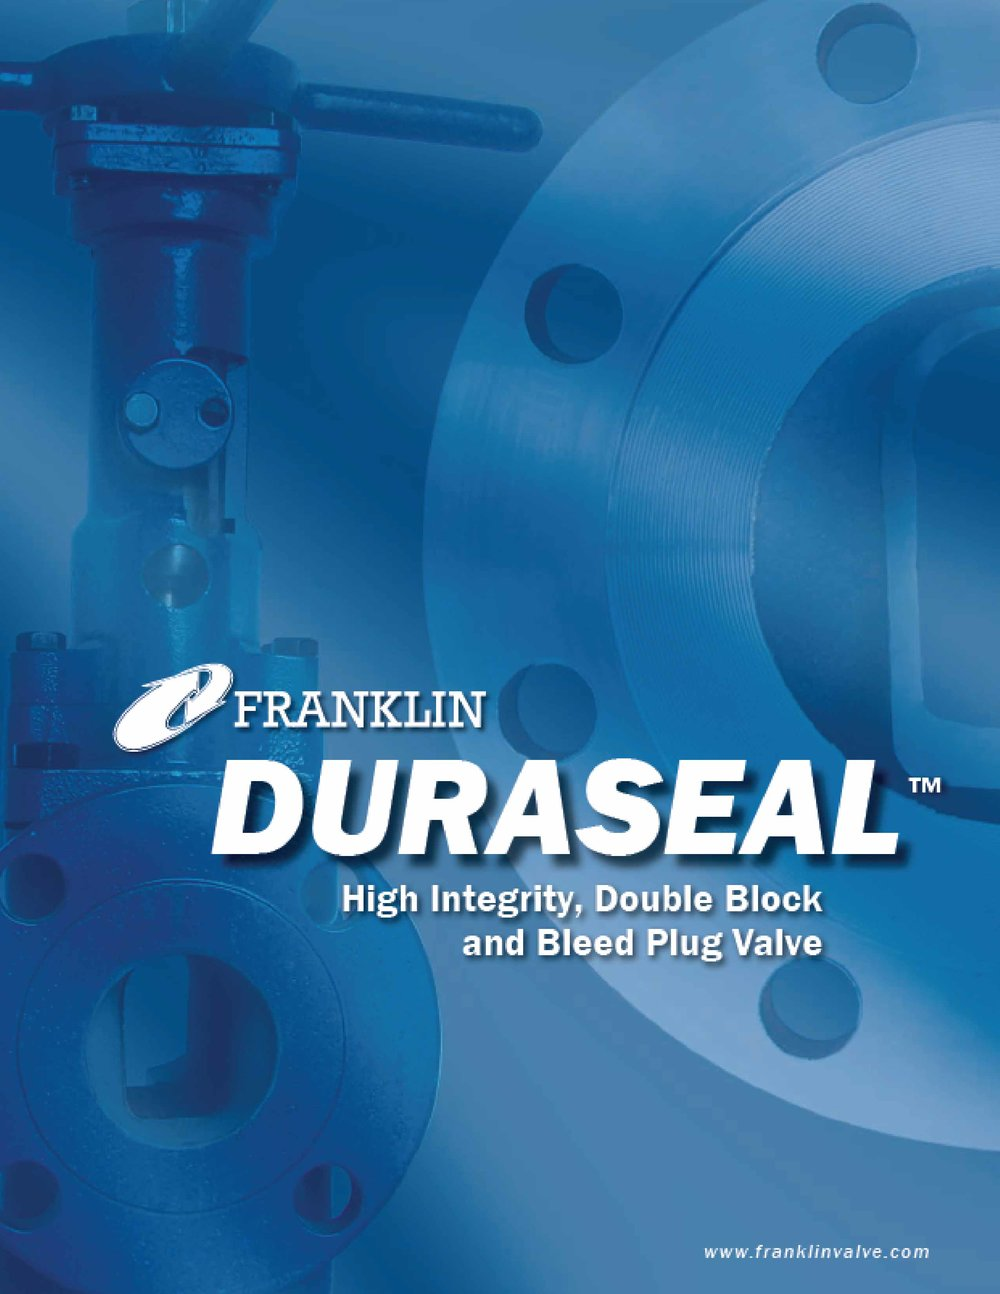 franklin_duraseal_brochure_pic-01.jpg